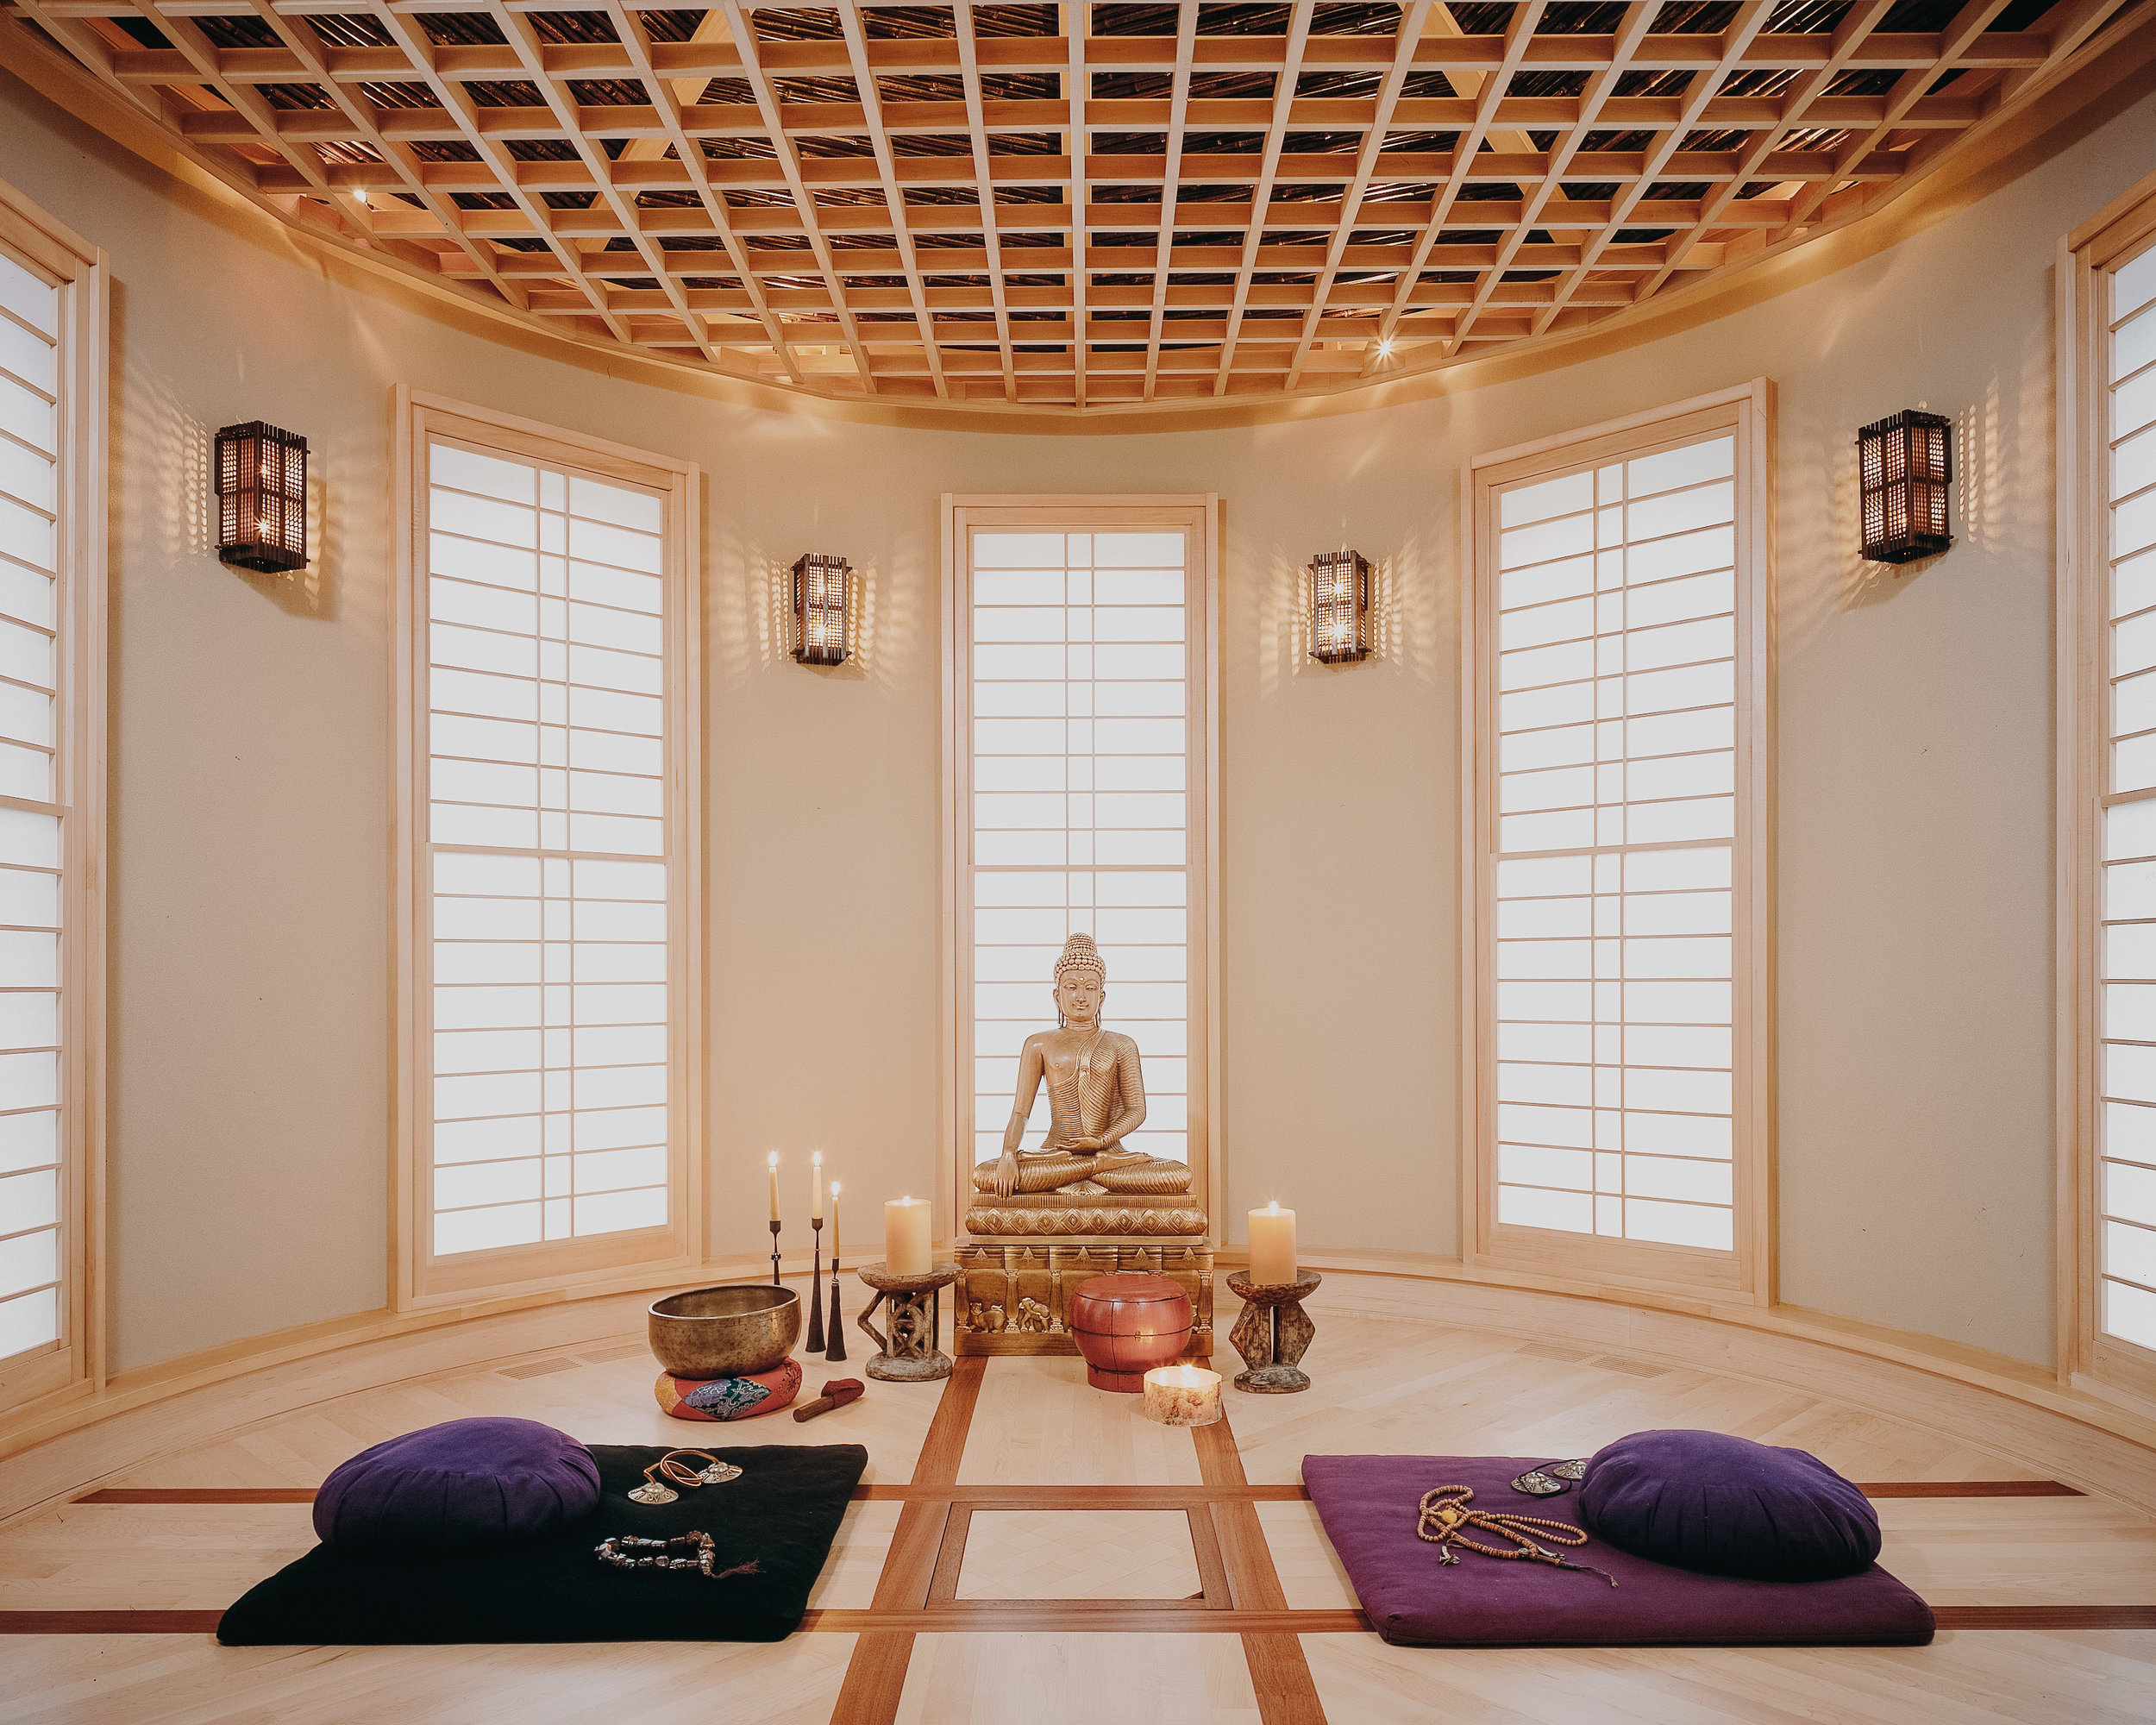 HarmonyMountainInstitutePennsylvania-MeditationRoom.jpg